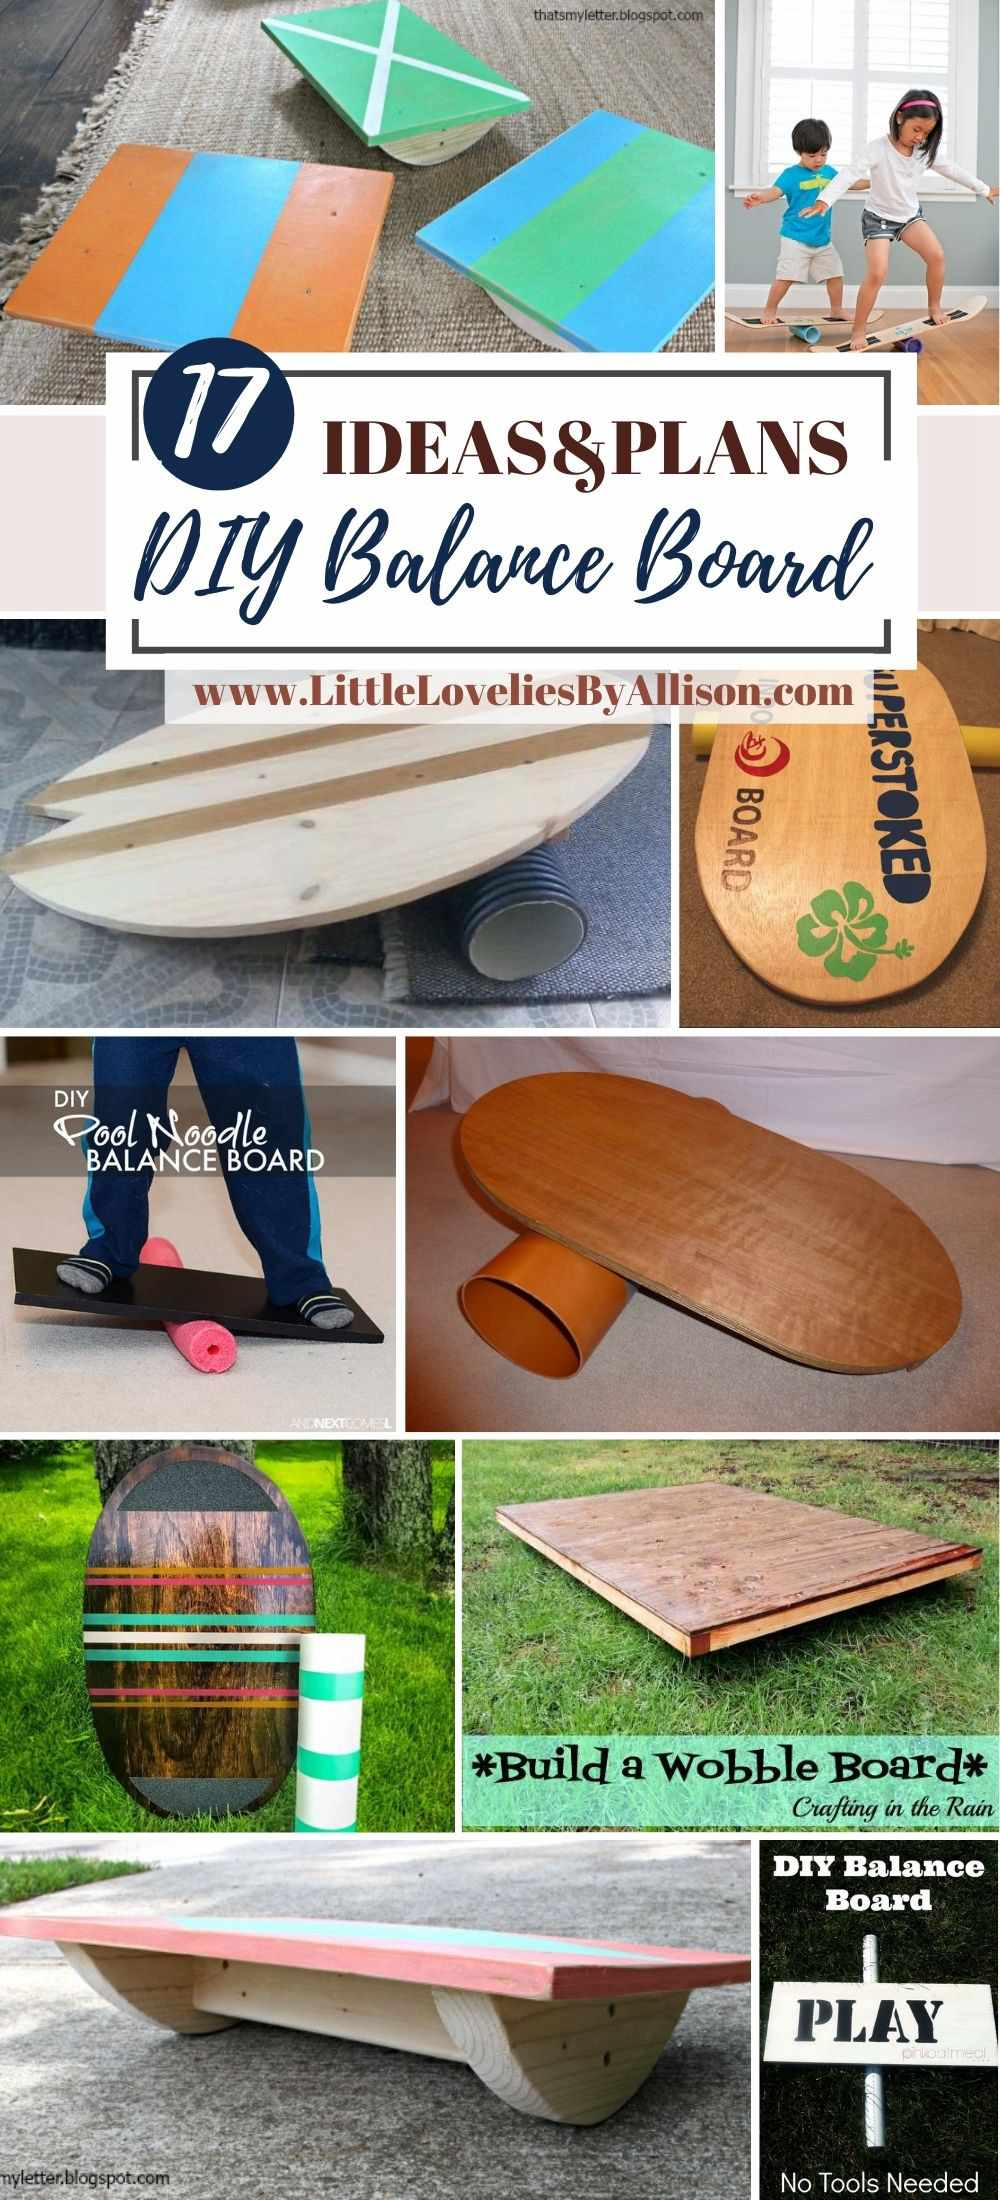 17 Different Ways to Shape DIY Balance Board at Home